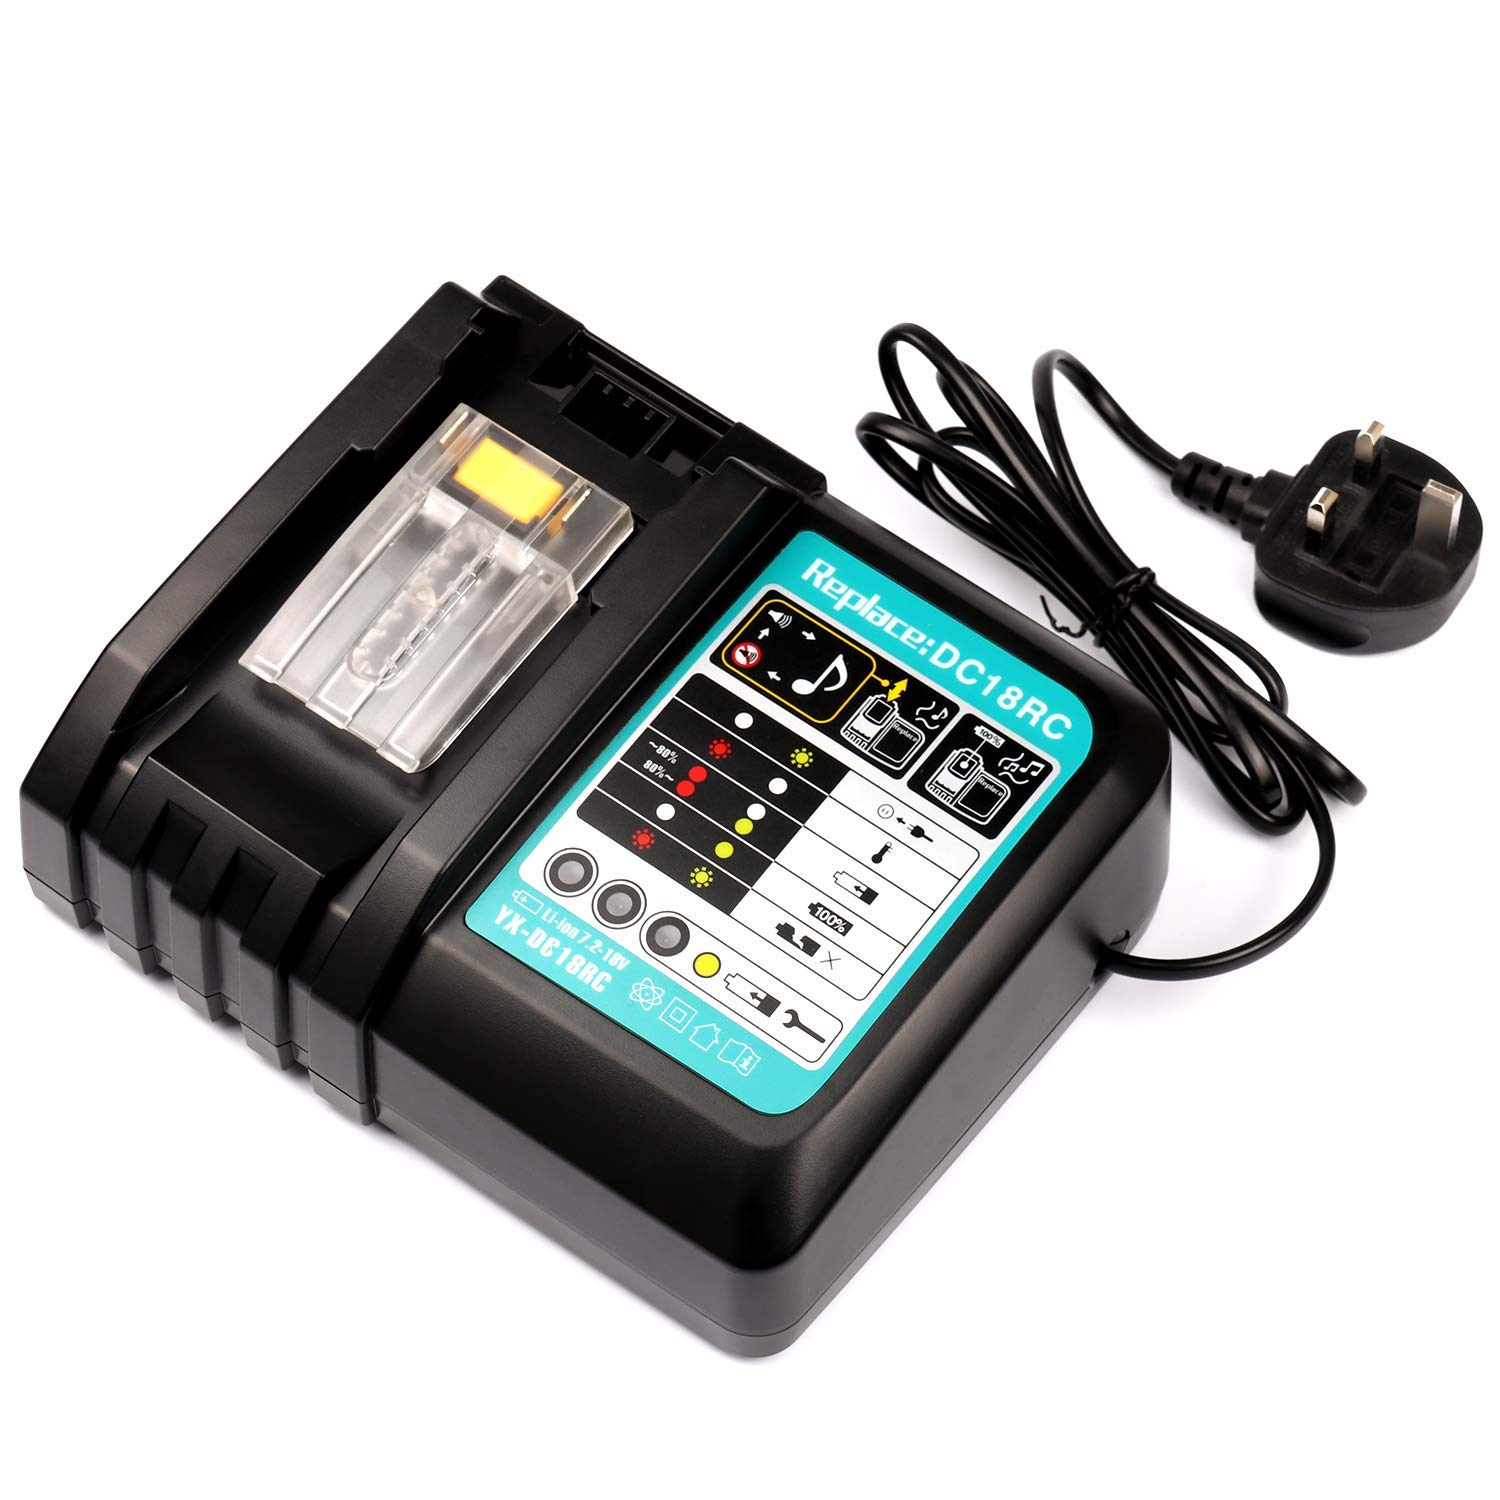 18V Lithium-ion LXT Battery BL1850B BL1860 BL1830 BL1840 BL1815 BL1430 VANTTECH 3A 18V Battery Replacement Charger DC18RC for Makita with LED Indicator Fit for Makita 14.4V